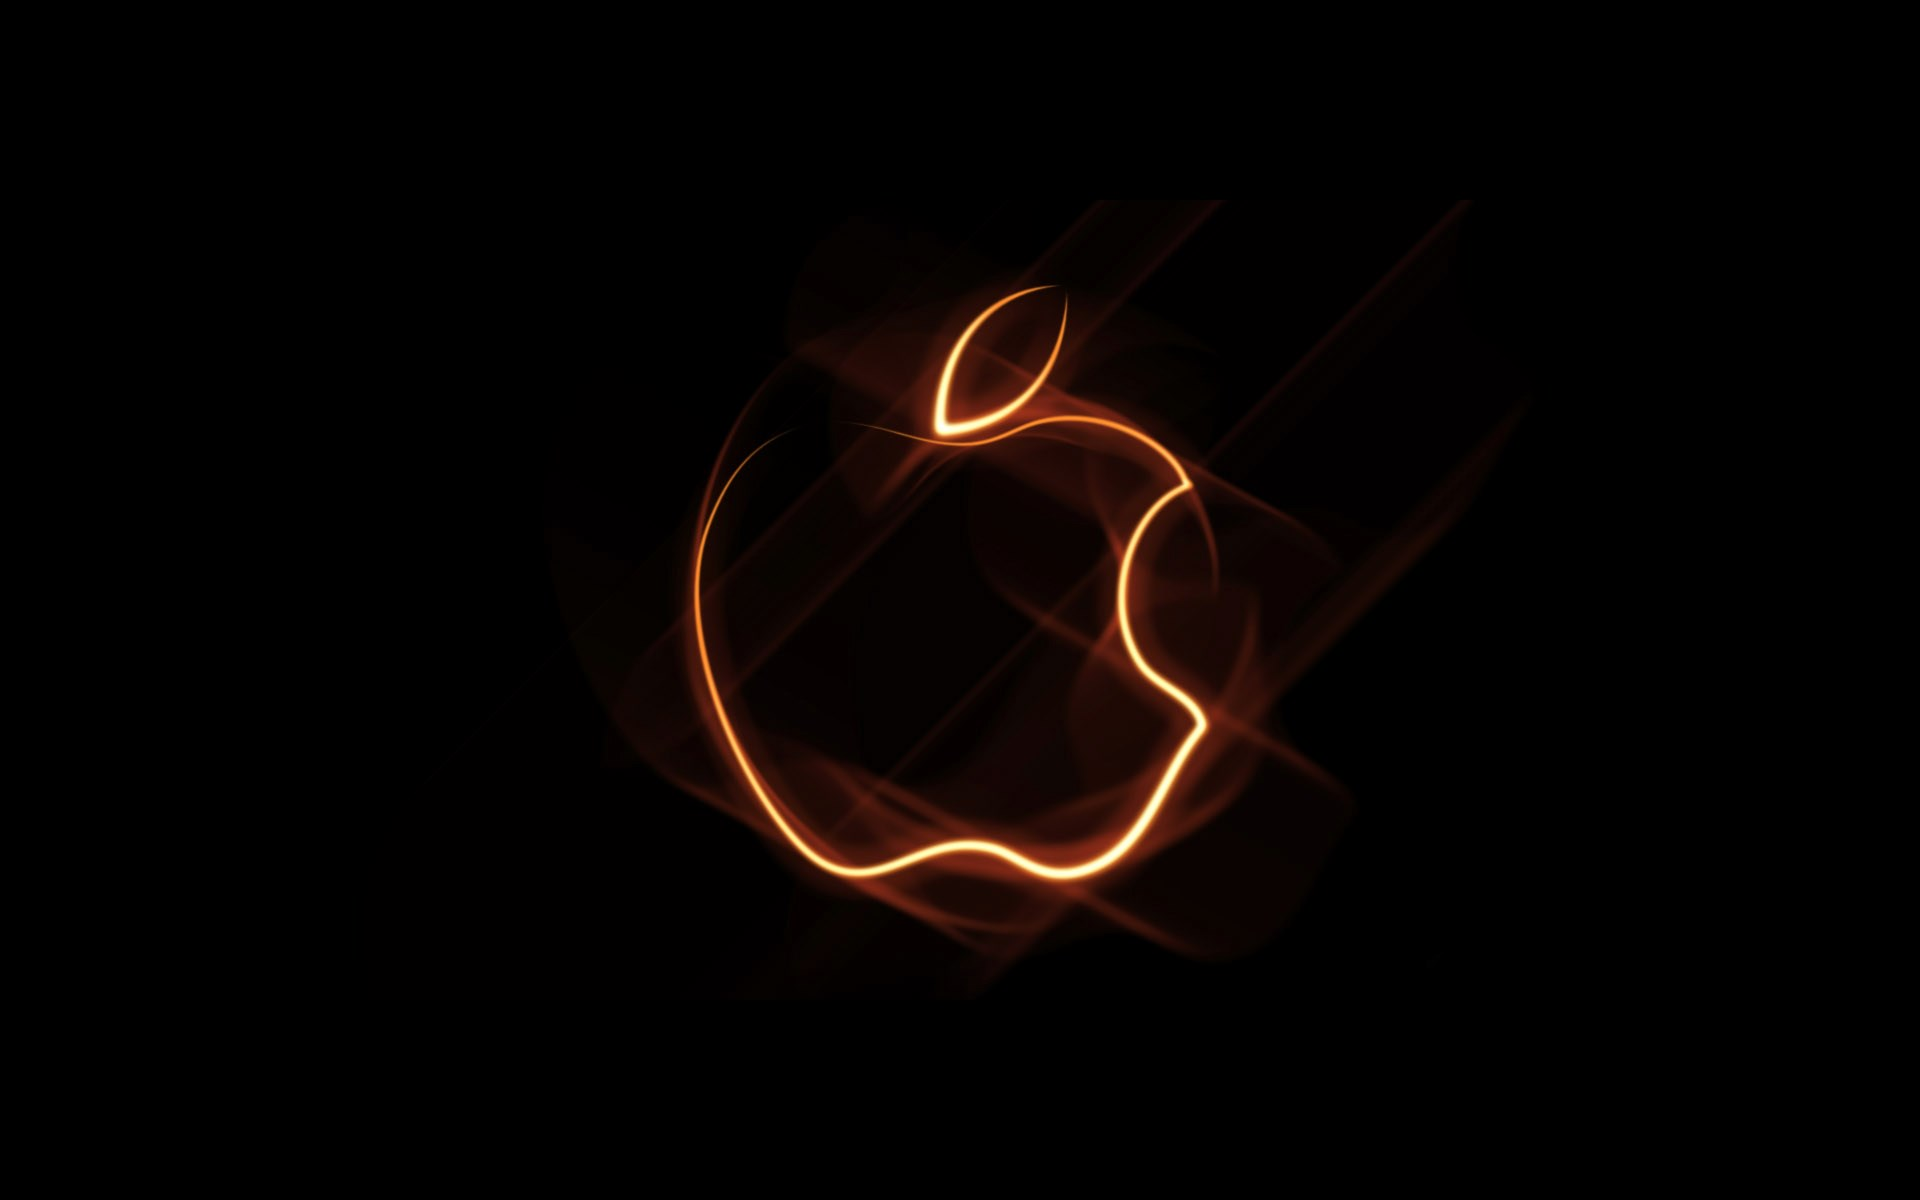 apple-hd-1080p-high-quality-wallpaper-wpc9002305